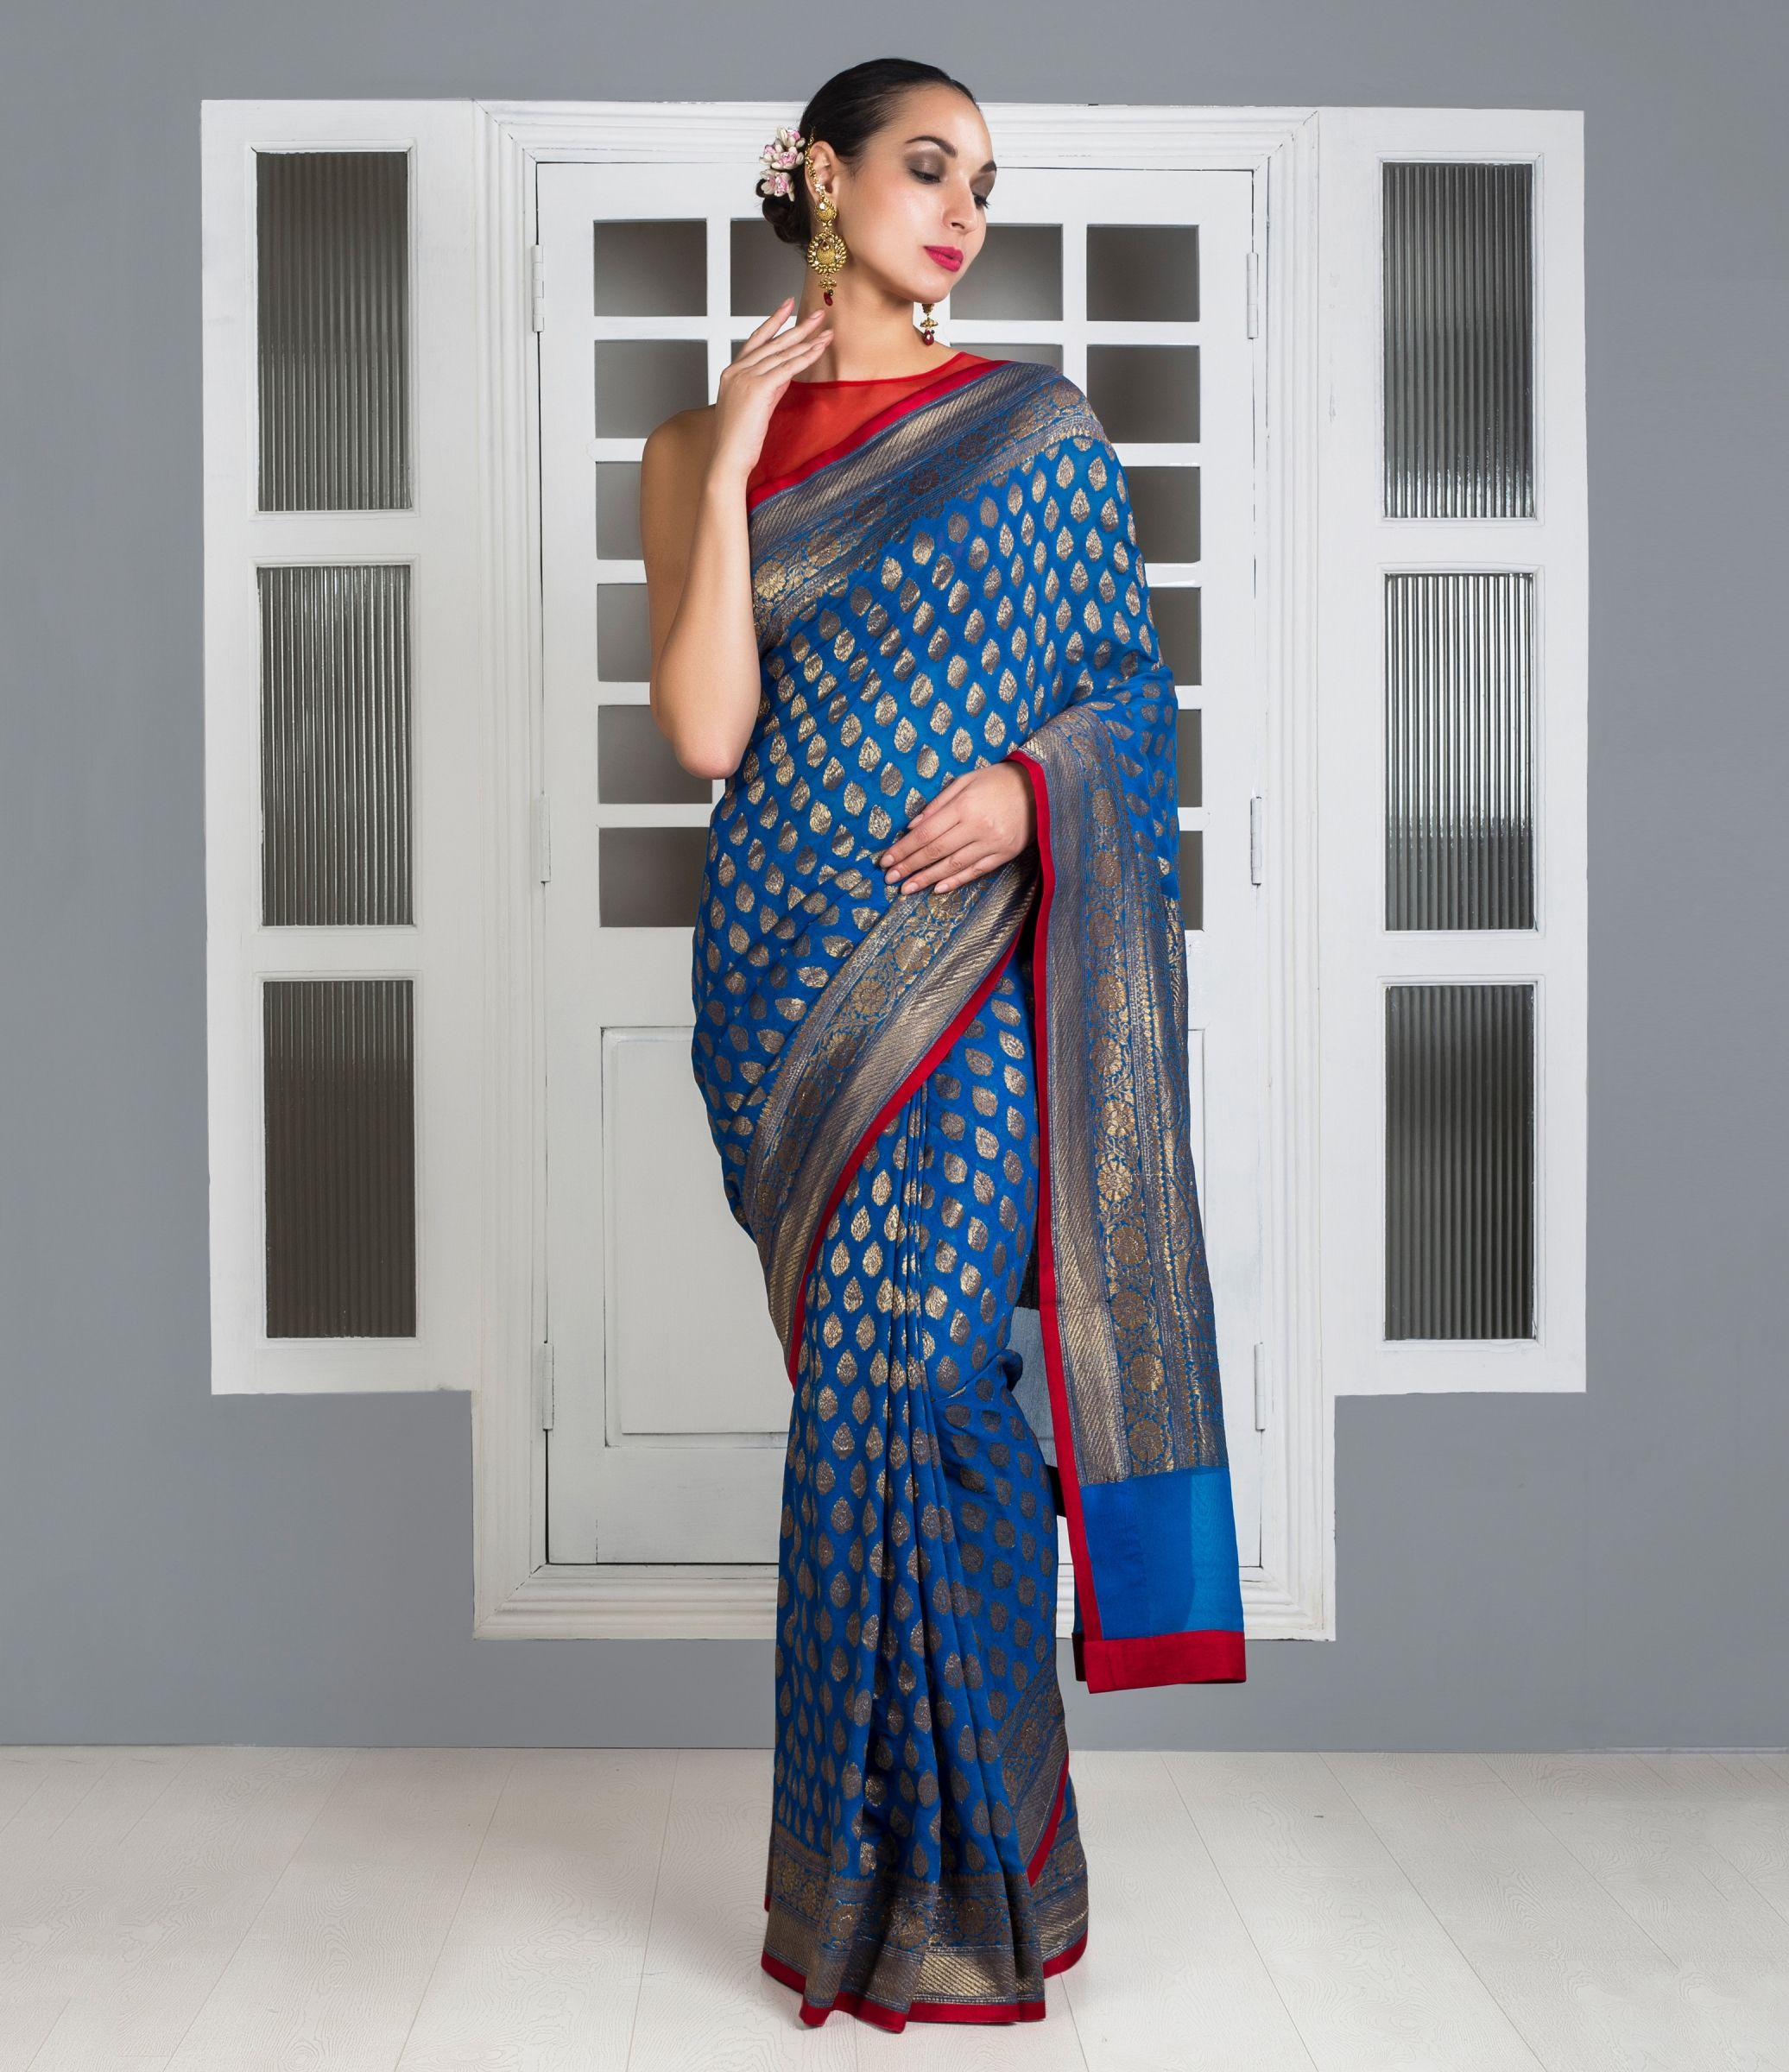 d1d6682916 This Ink blue antique zari Banrasi georgette saree has small antique zari  woven bootis all over